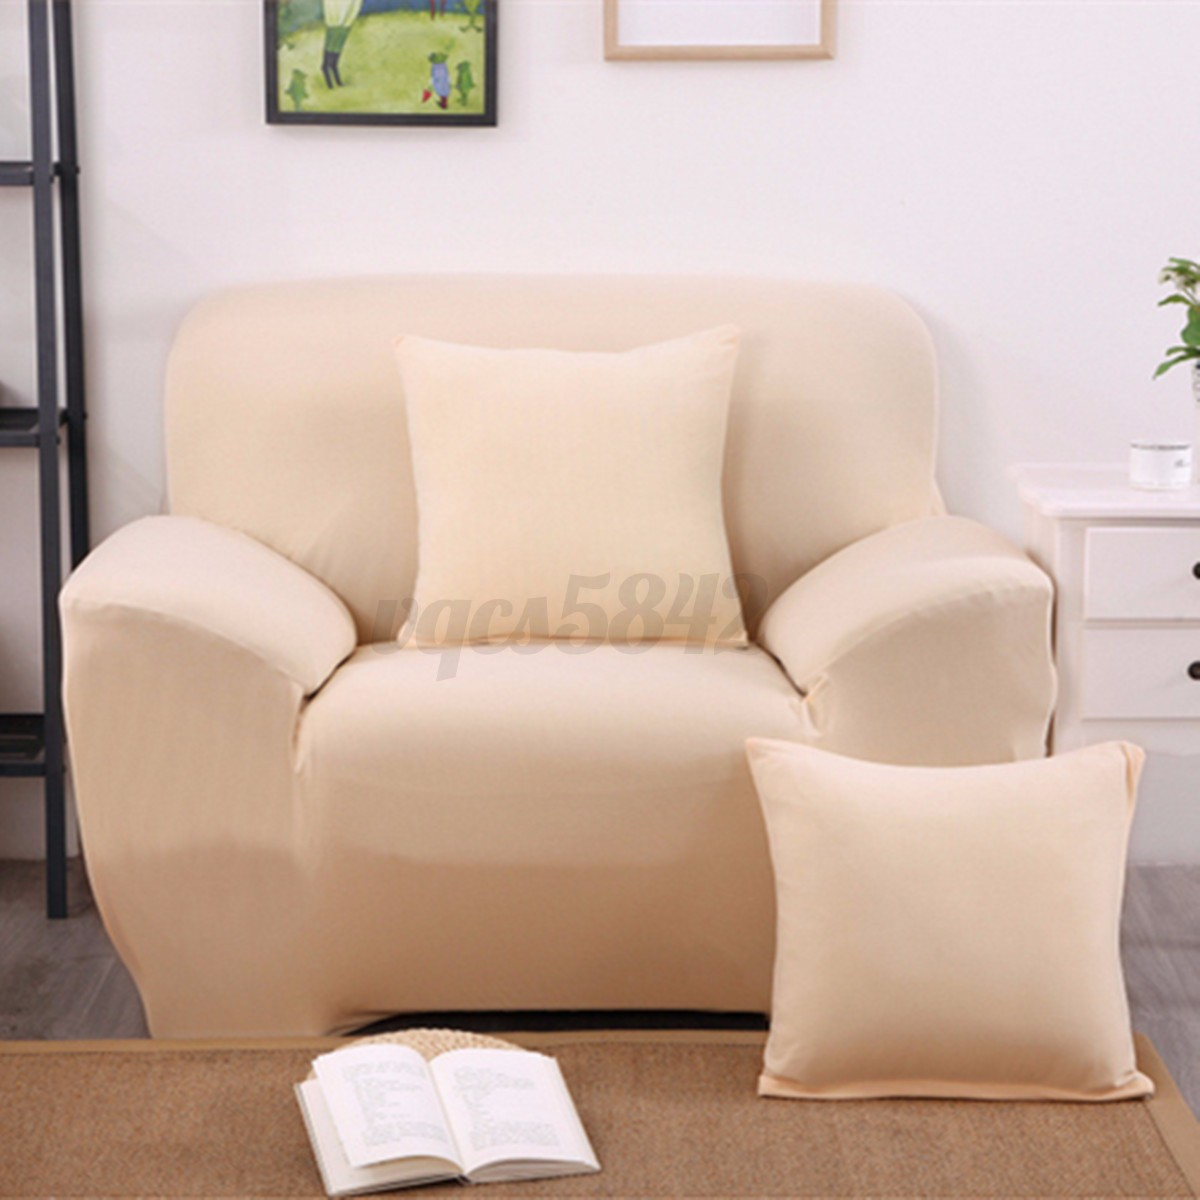 sofa seat covers in kenya ohs bean bag cover 1 2 3 l shape sectional couch stretch